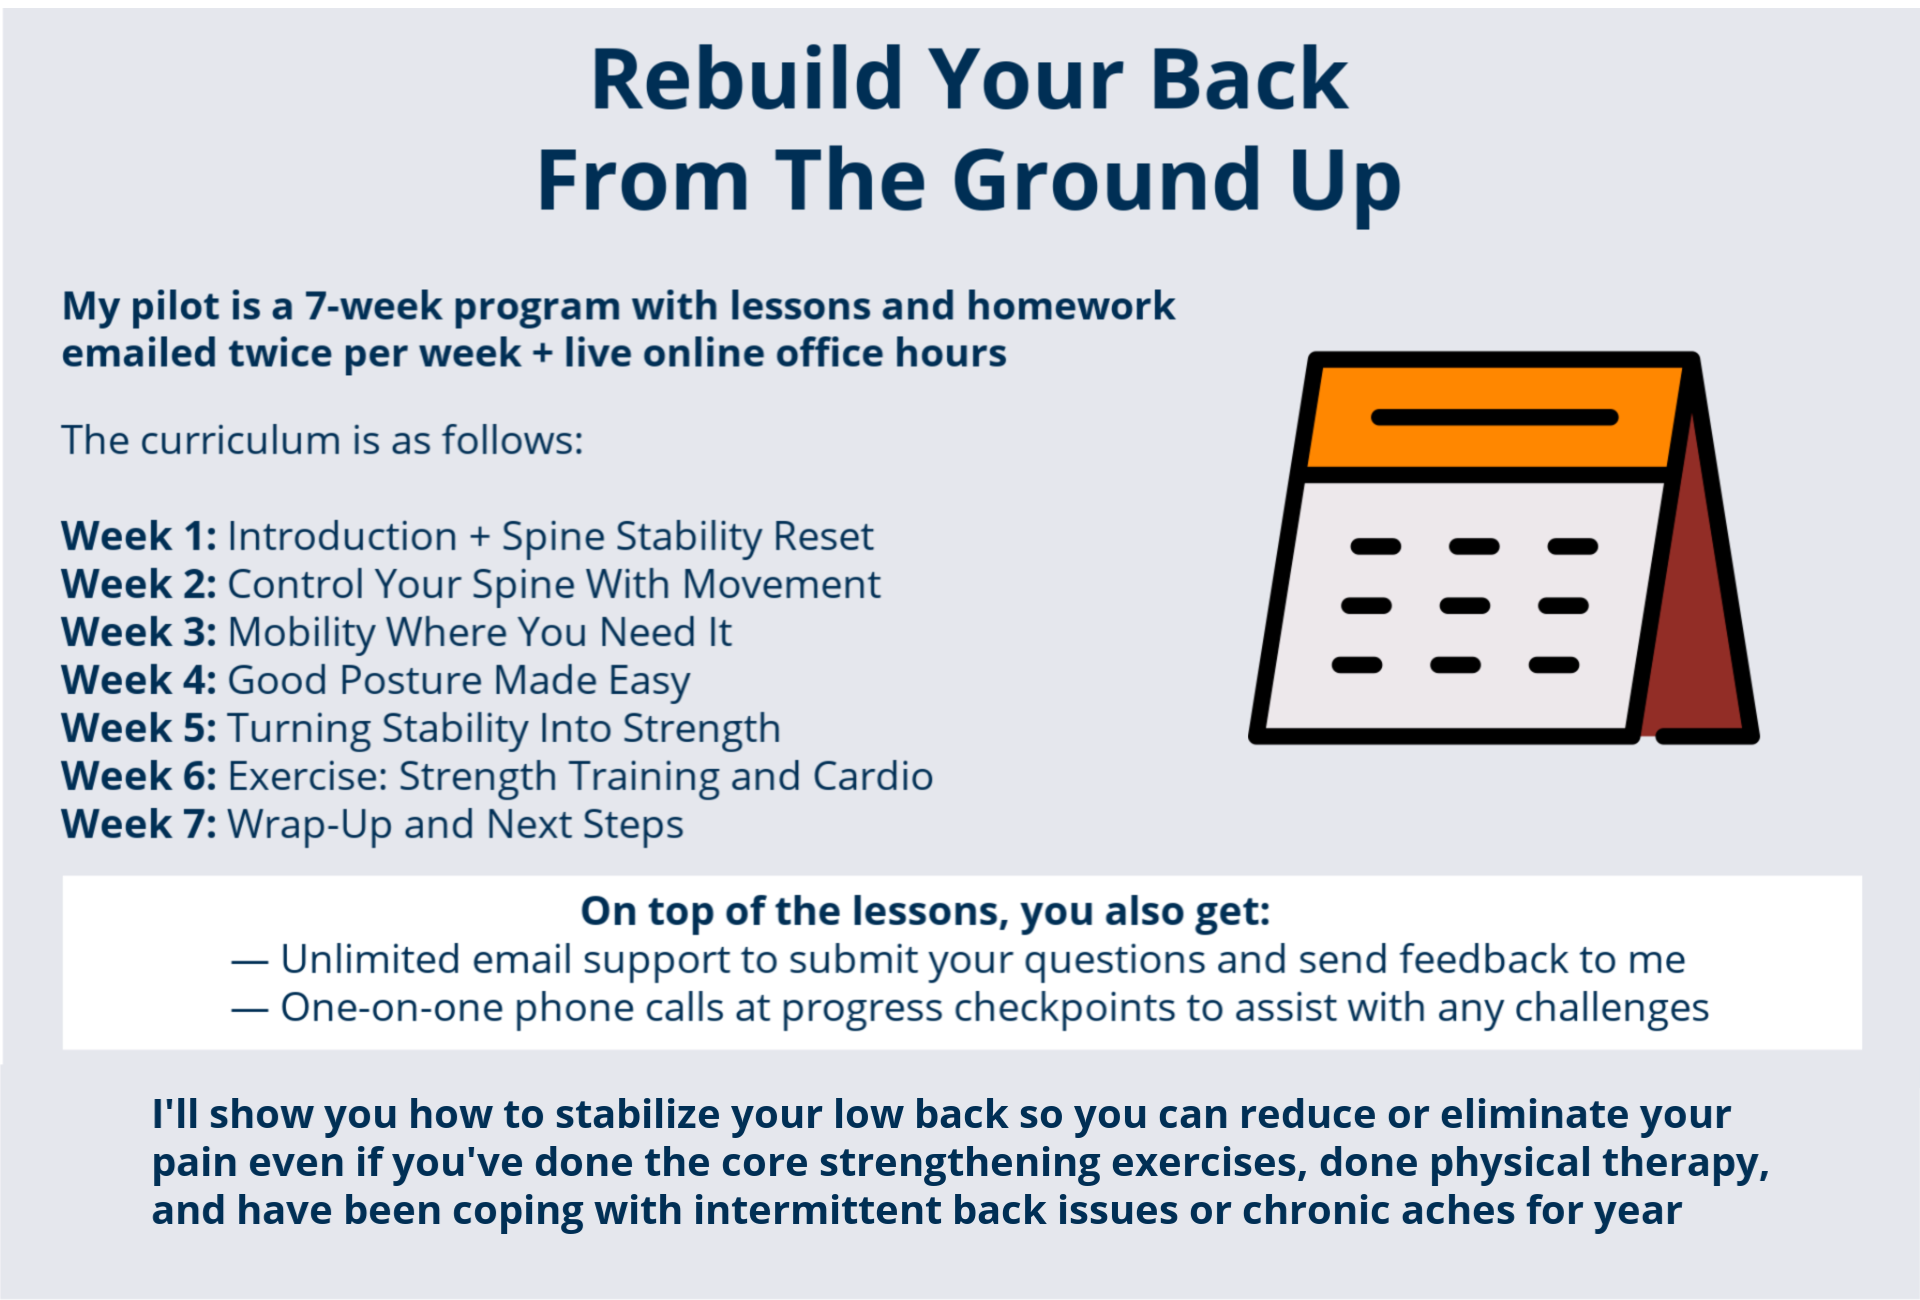 Rebuild your back pic (6).png